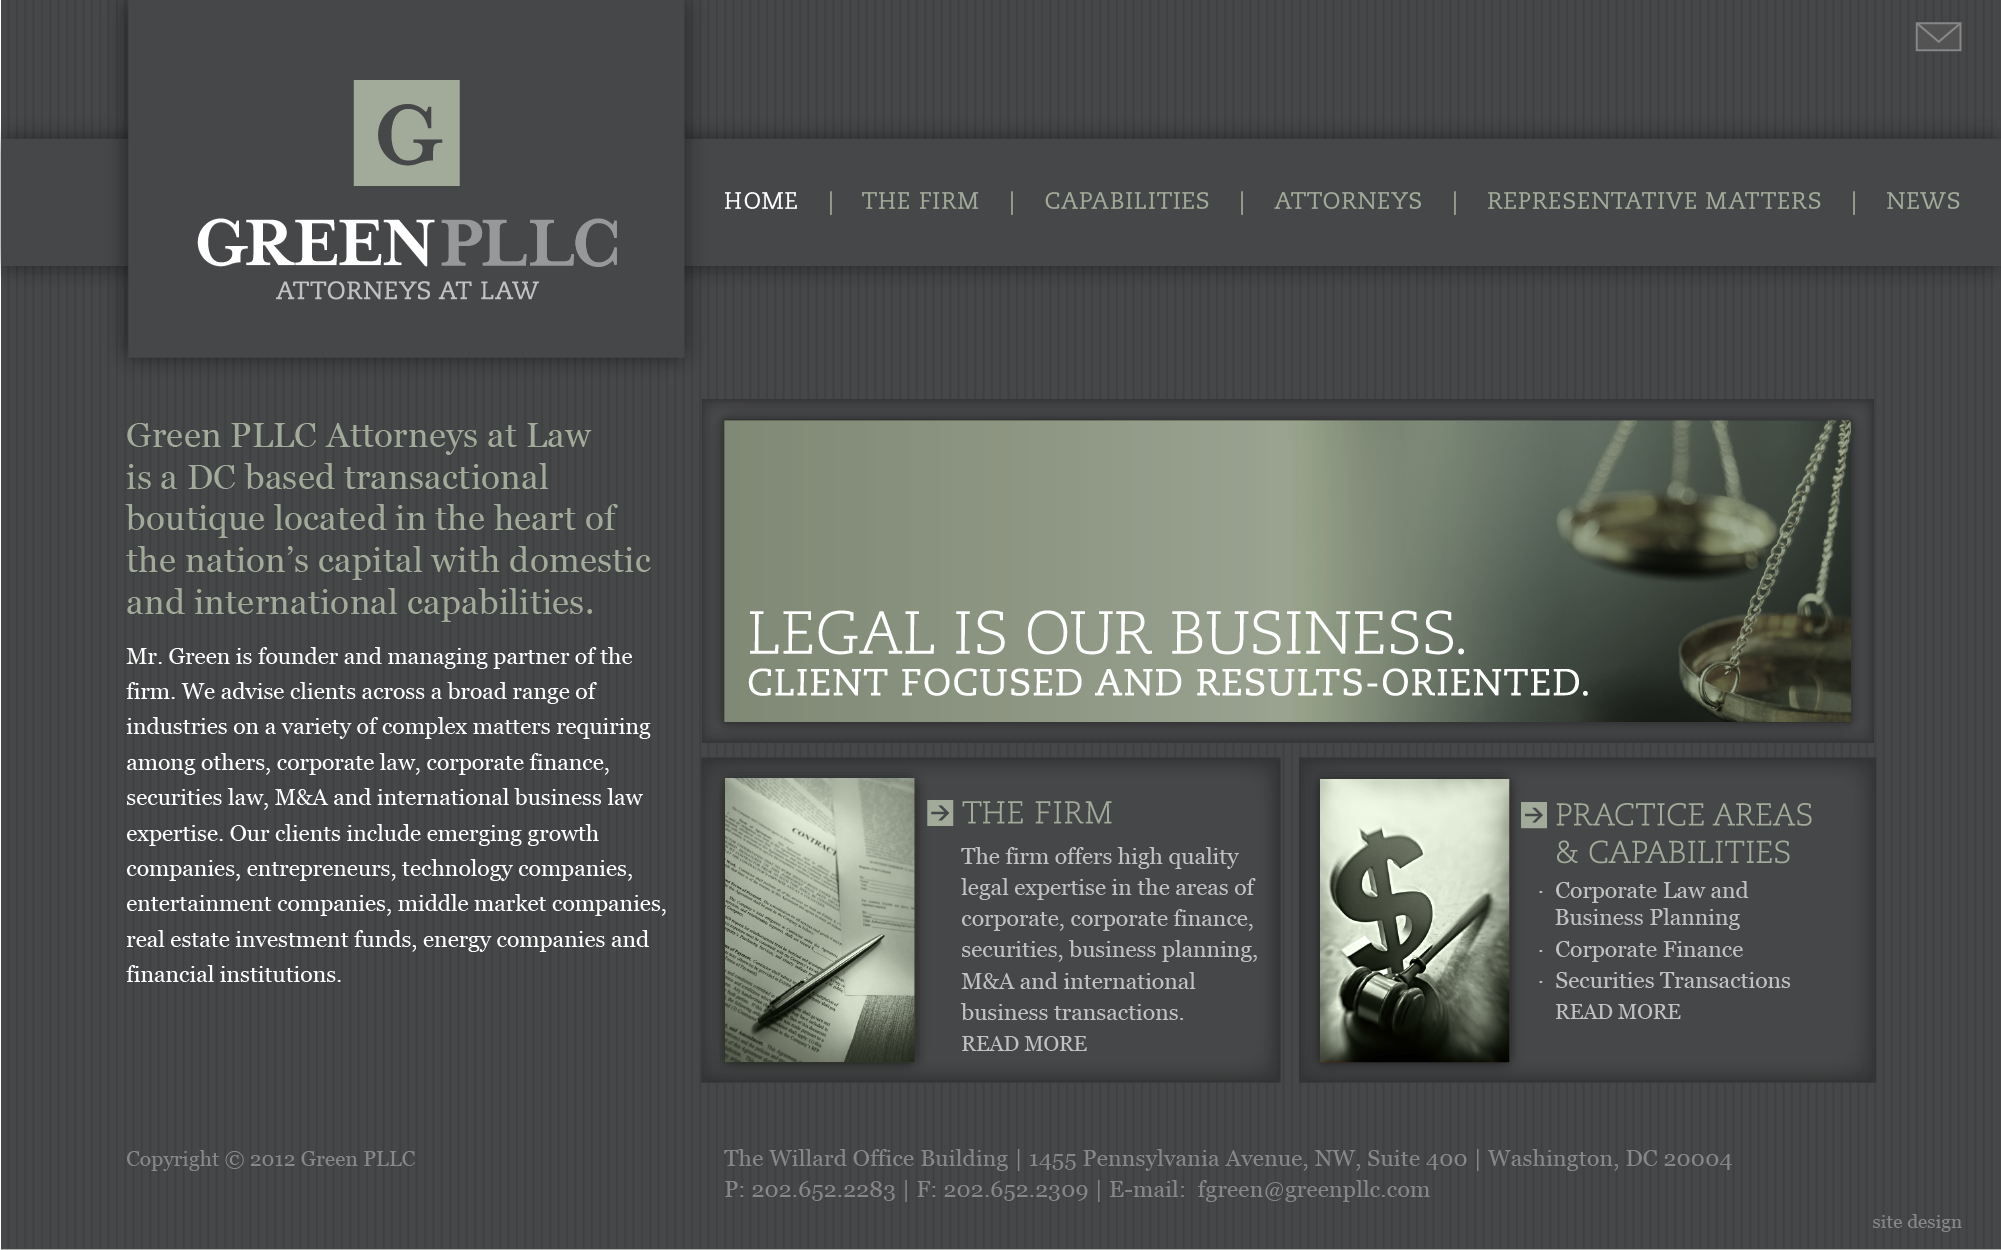 FGREENPLLC_homepage_final.png